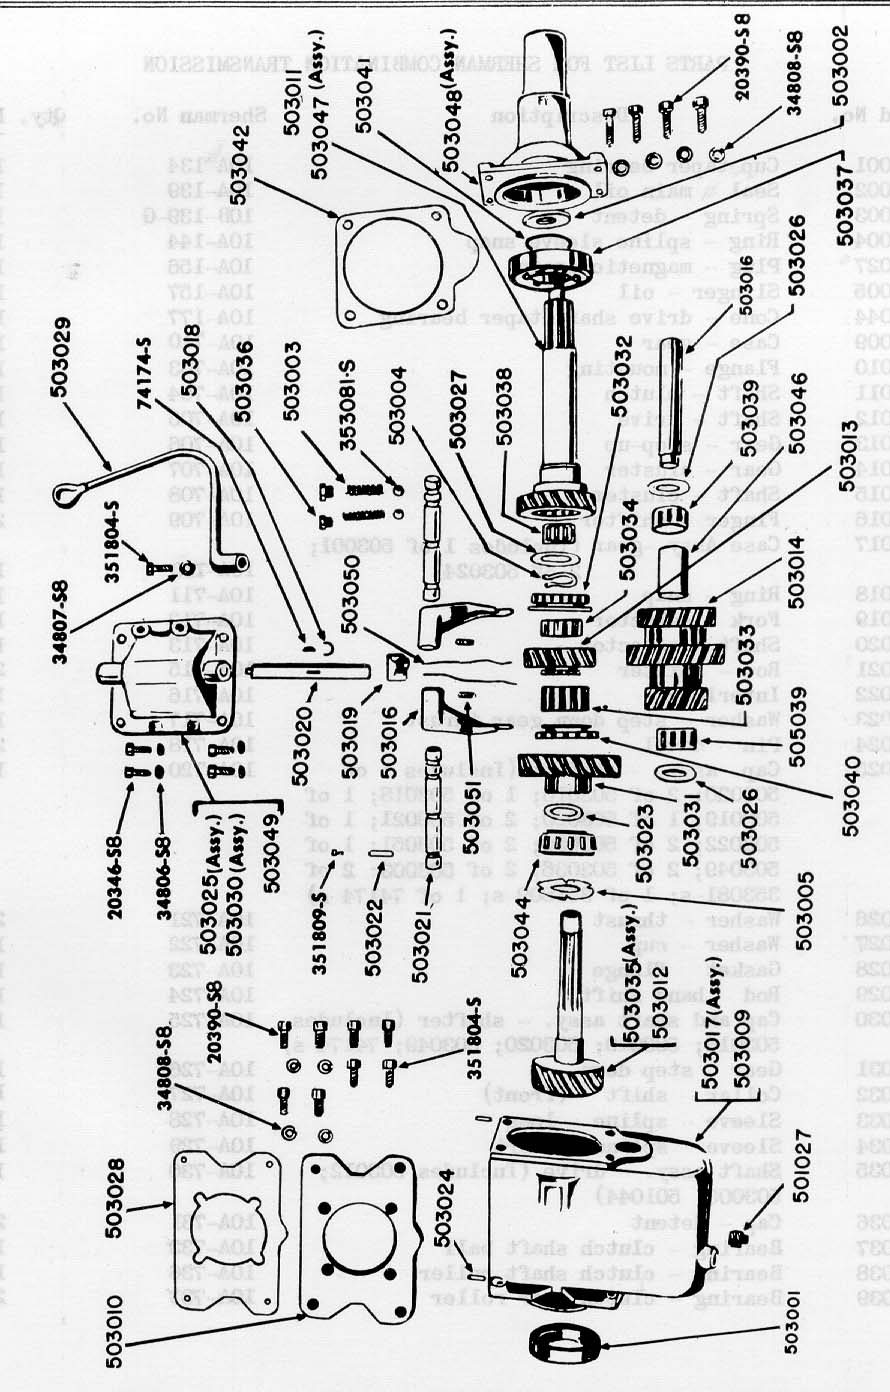 Ford Tractor Parts Diagram Wiring For 3000 Sel 2310 Engine Auto